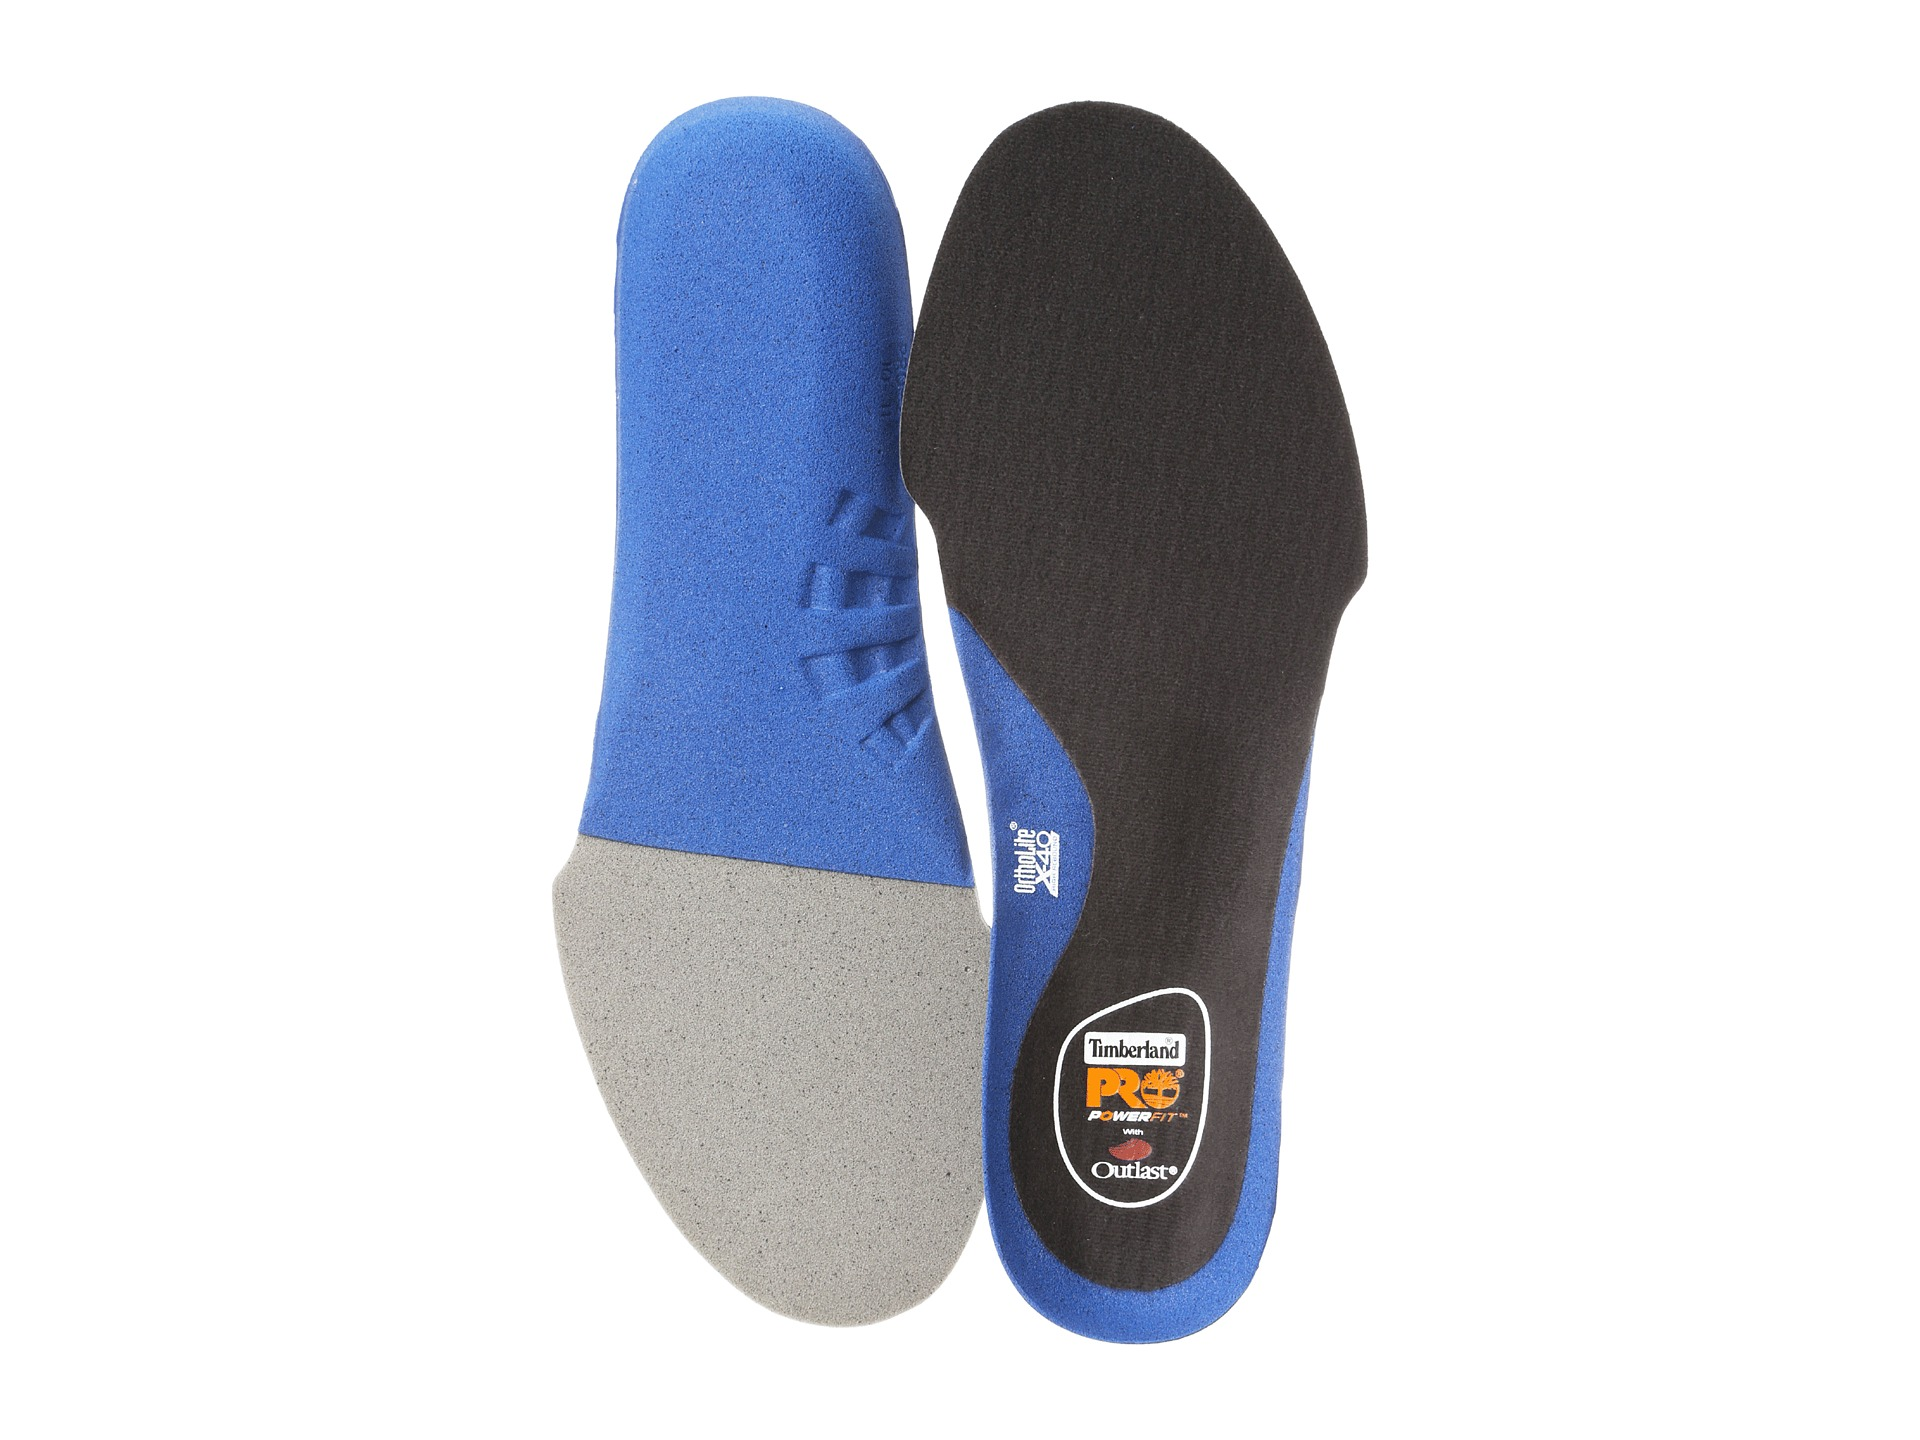 replacement insoles for timberland boots